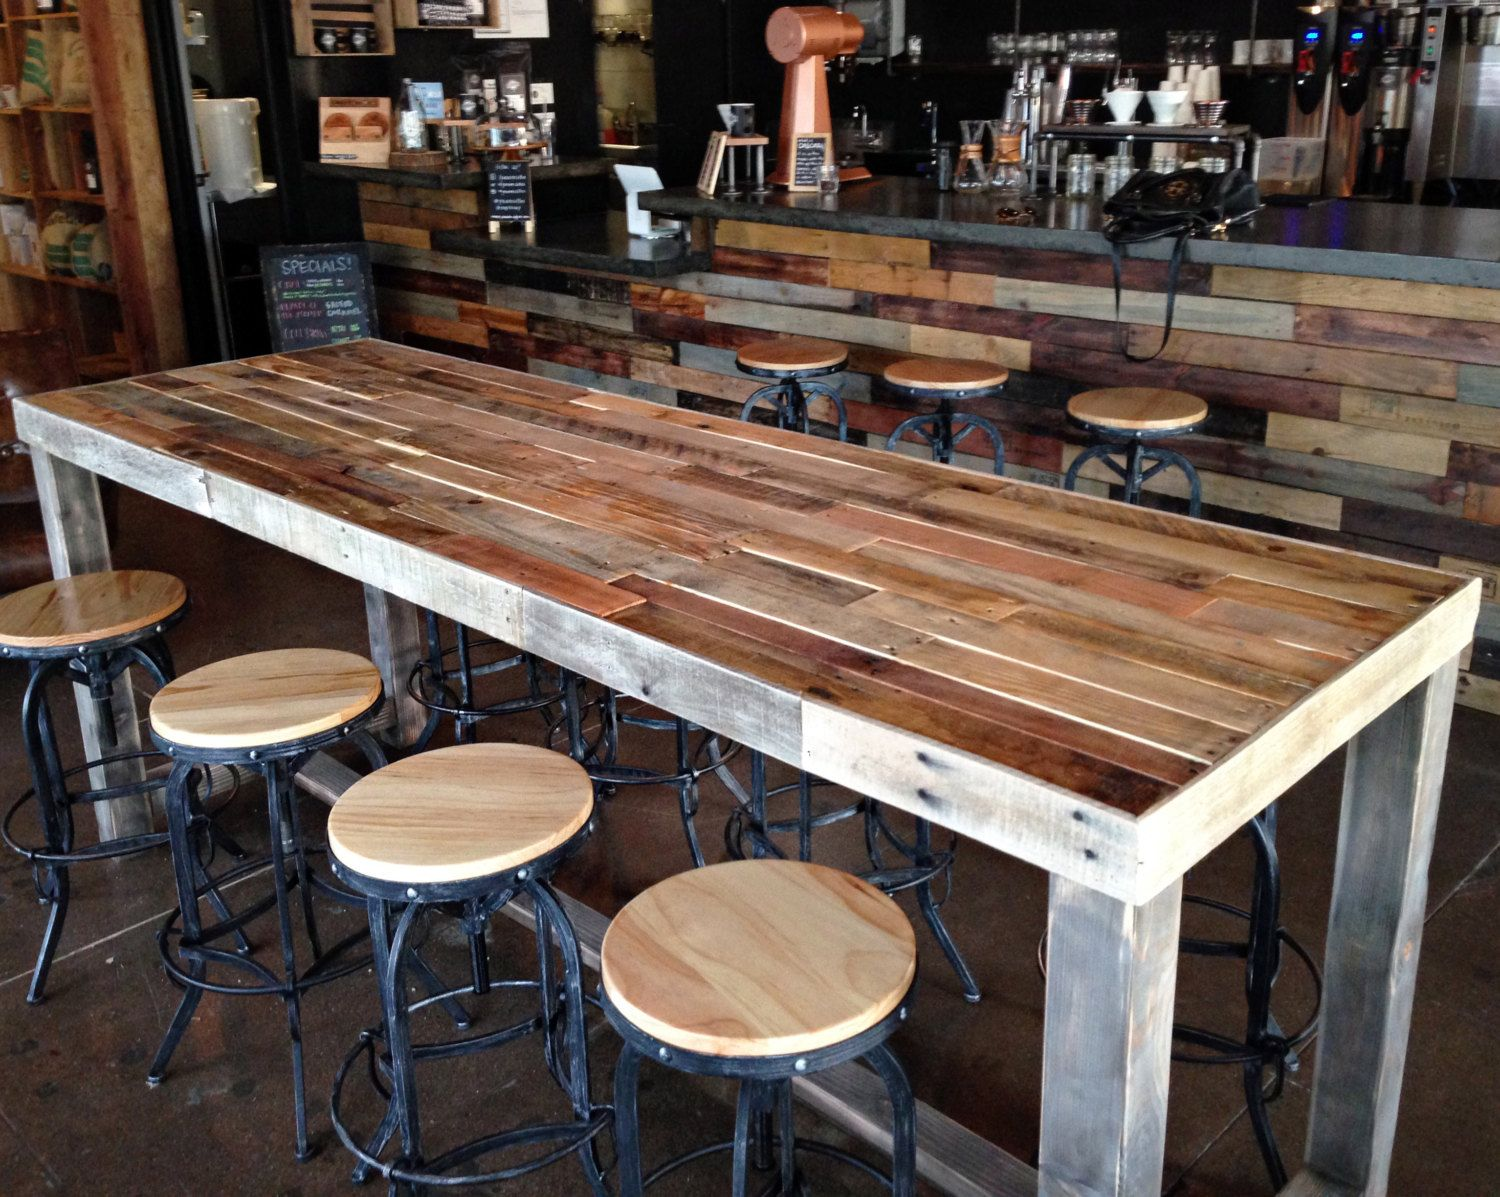 Cafe Table Tops Reclaimed Wood Bar Restaurant Counter Community By